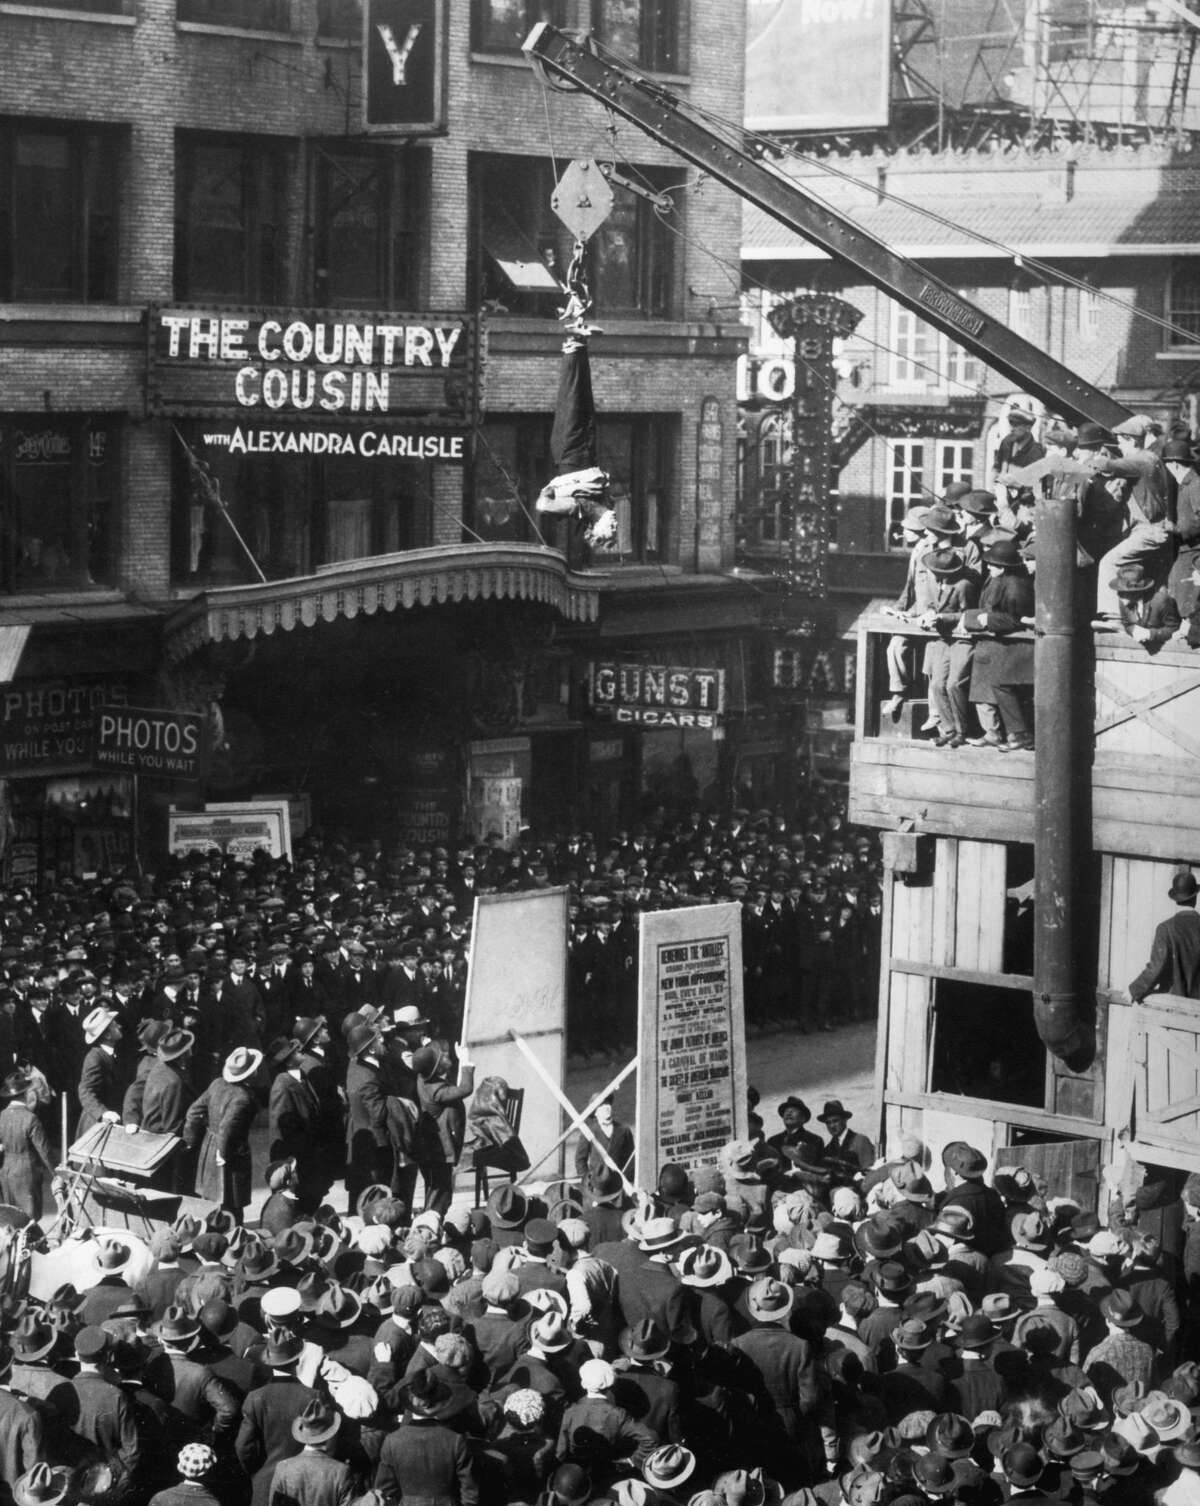 Harry Houdini slipping out of a straitjacket while hanging upside down over Broadway and 46th street in New York City.